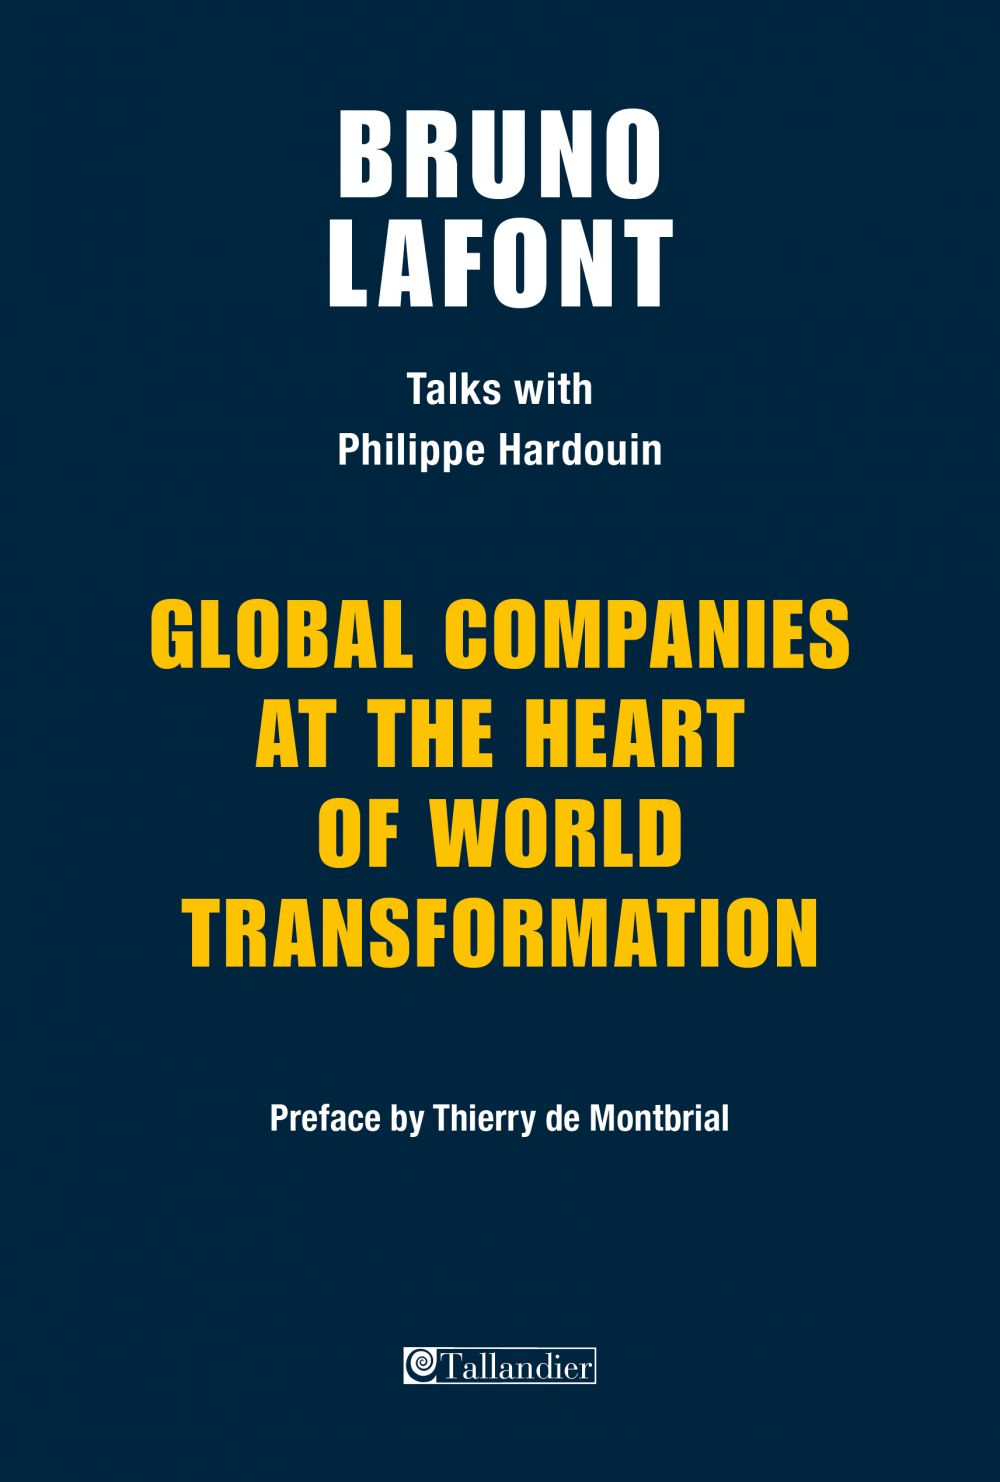 Global companies at the heart of world transformation